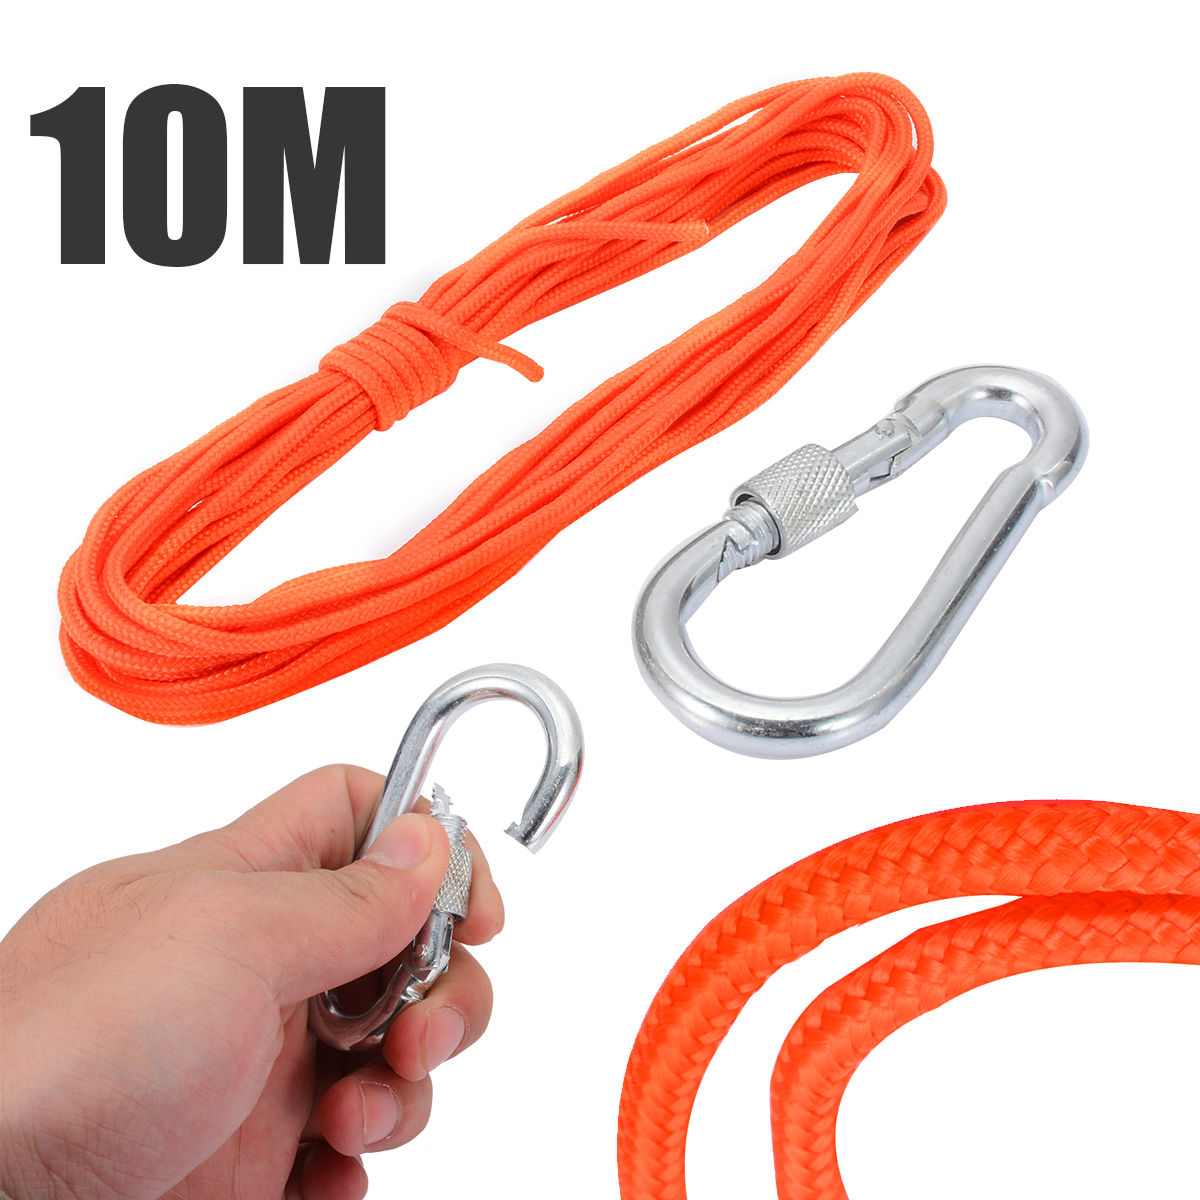 New Orange Nylon Strap 10 Meter Fishing Magnet Rope with Metal Safety Hook For Outdoor River Fishing Treasure  MagnetNew Orange Nylon Strap 10 Meter Fishing Magnet Rope with Metal Safety Hook For Outdoor River Fishing Treasure  Magnet